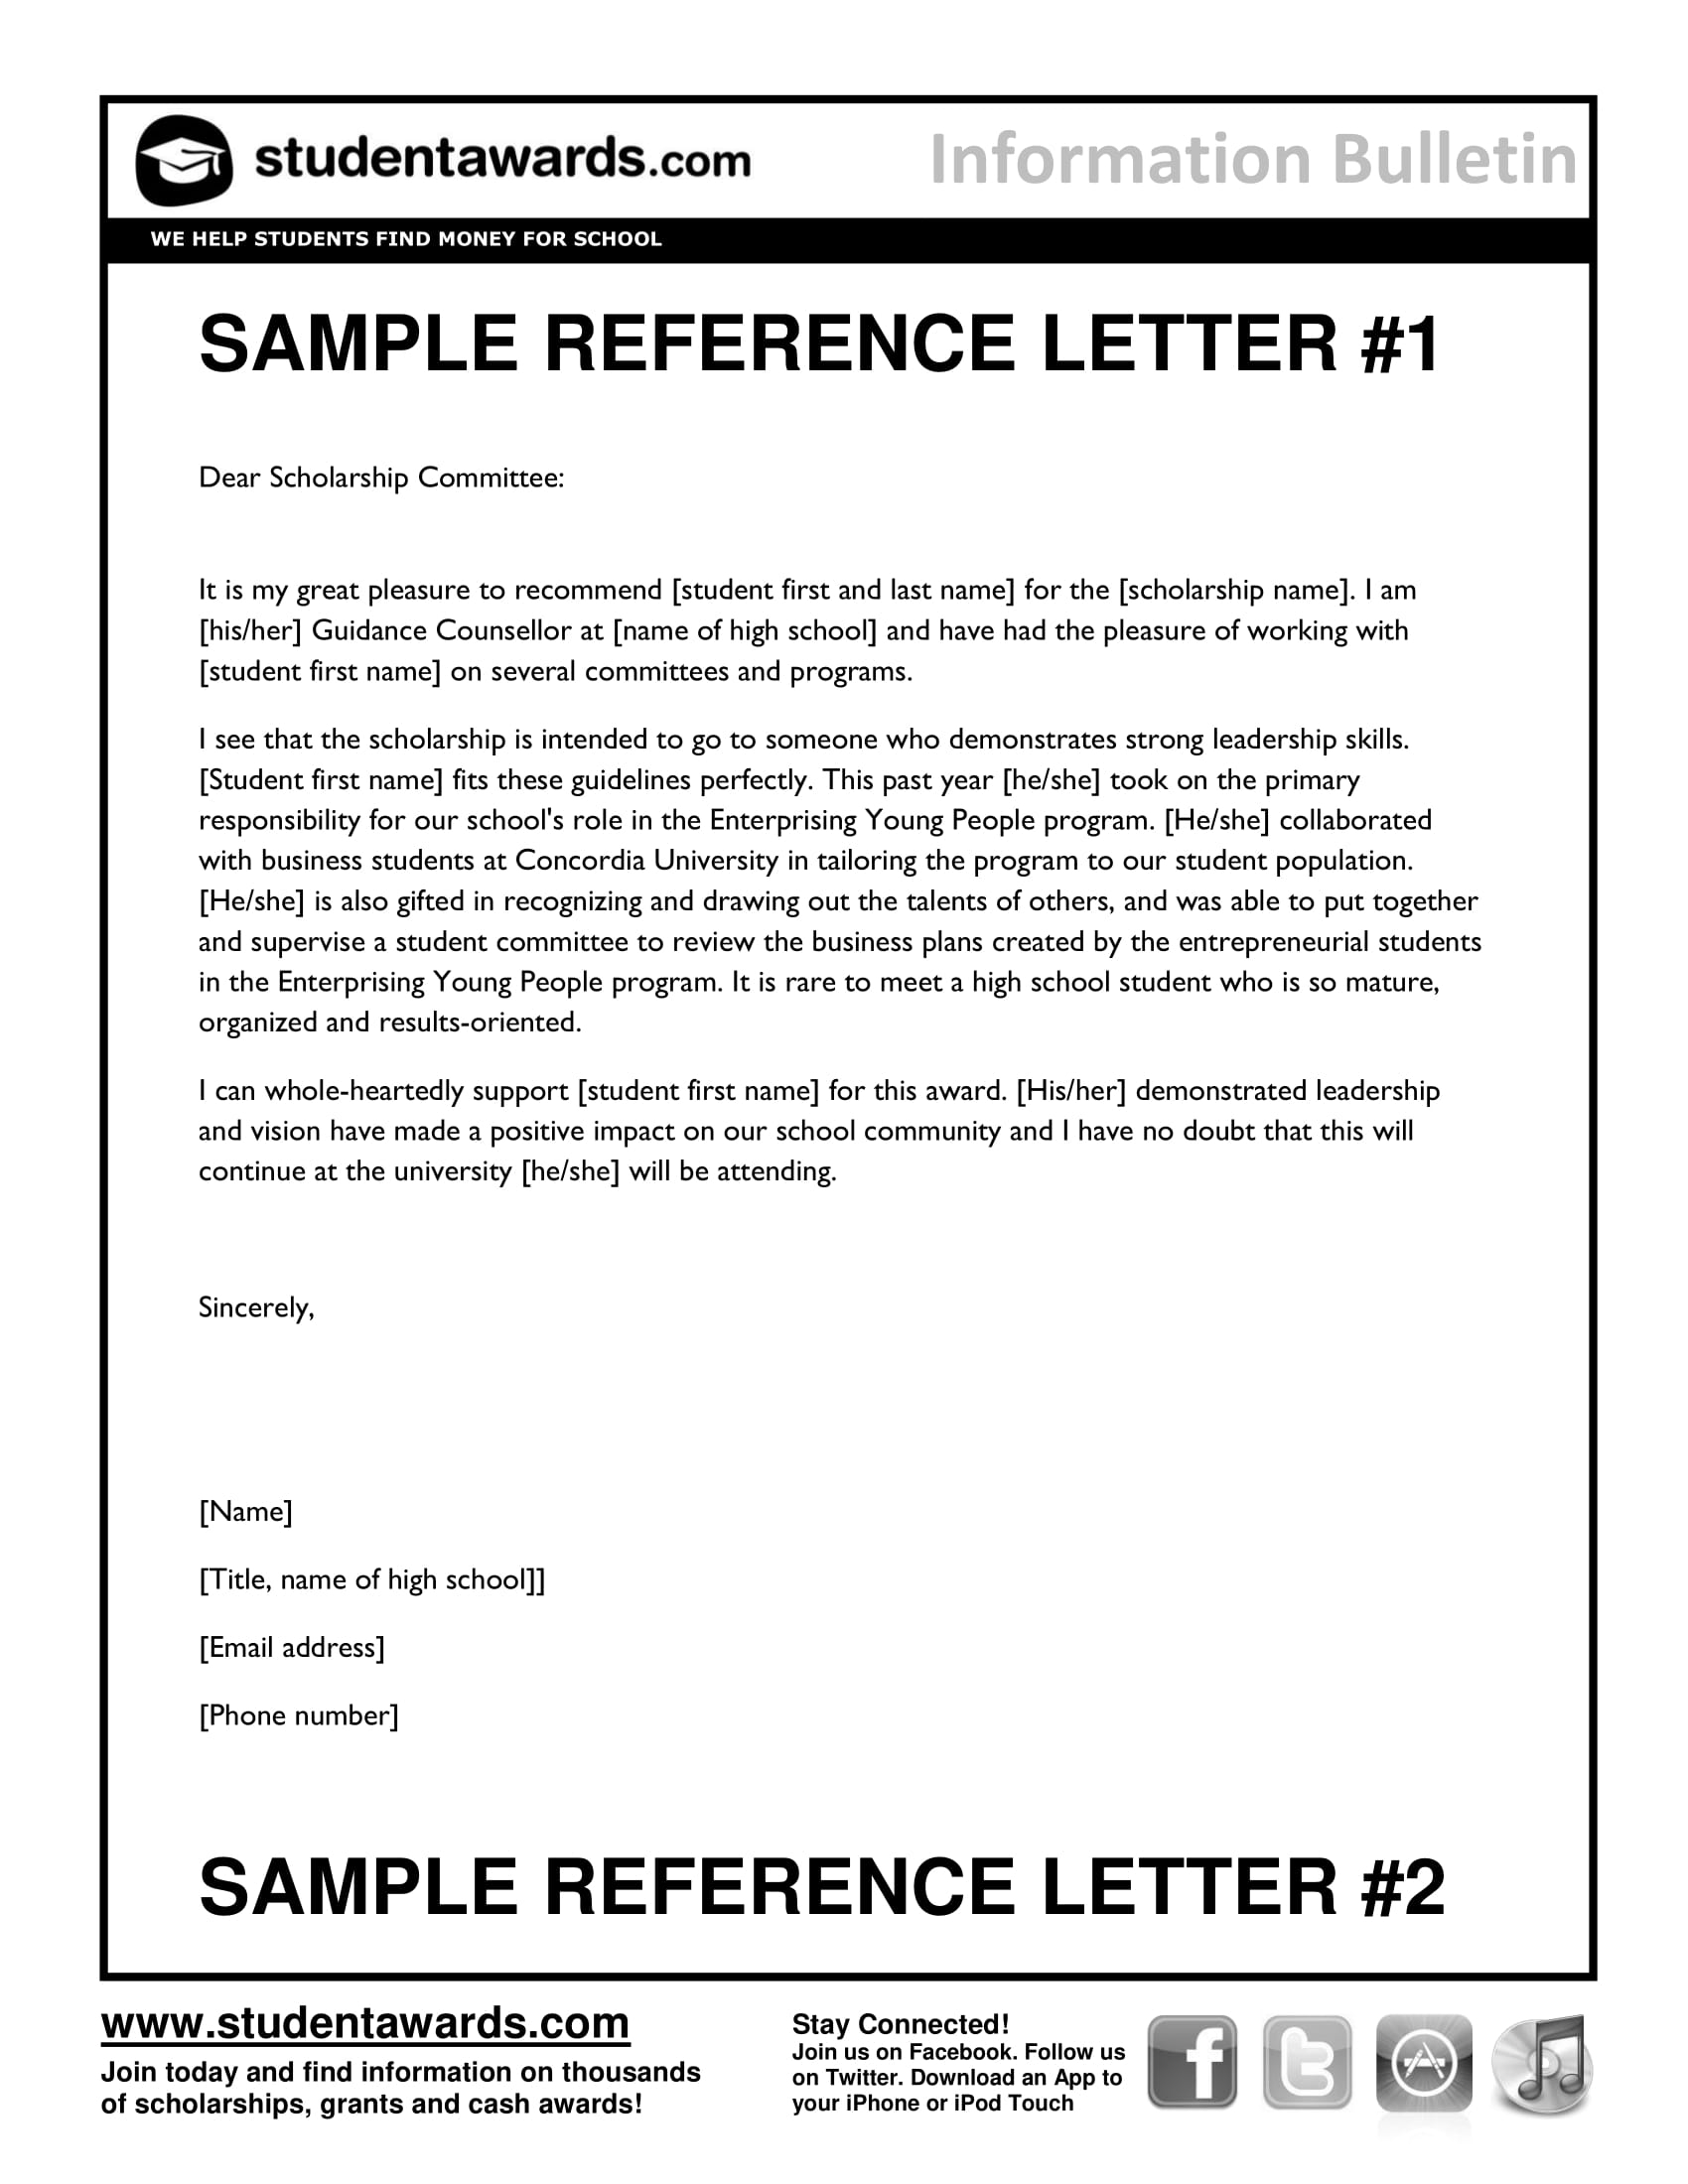 Jet program reference letter gallery letter format formal sample jet program reference letter image collections letter format jet program reference letter gallery letter format formal expocarfo Image collections